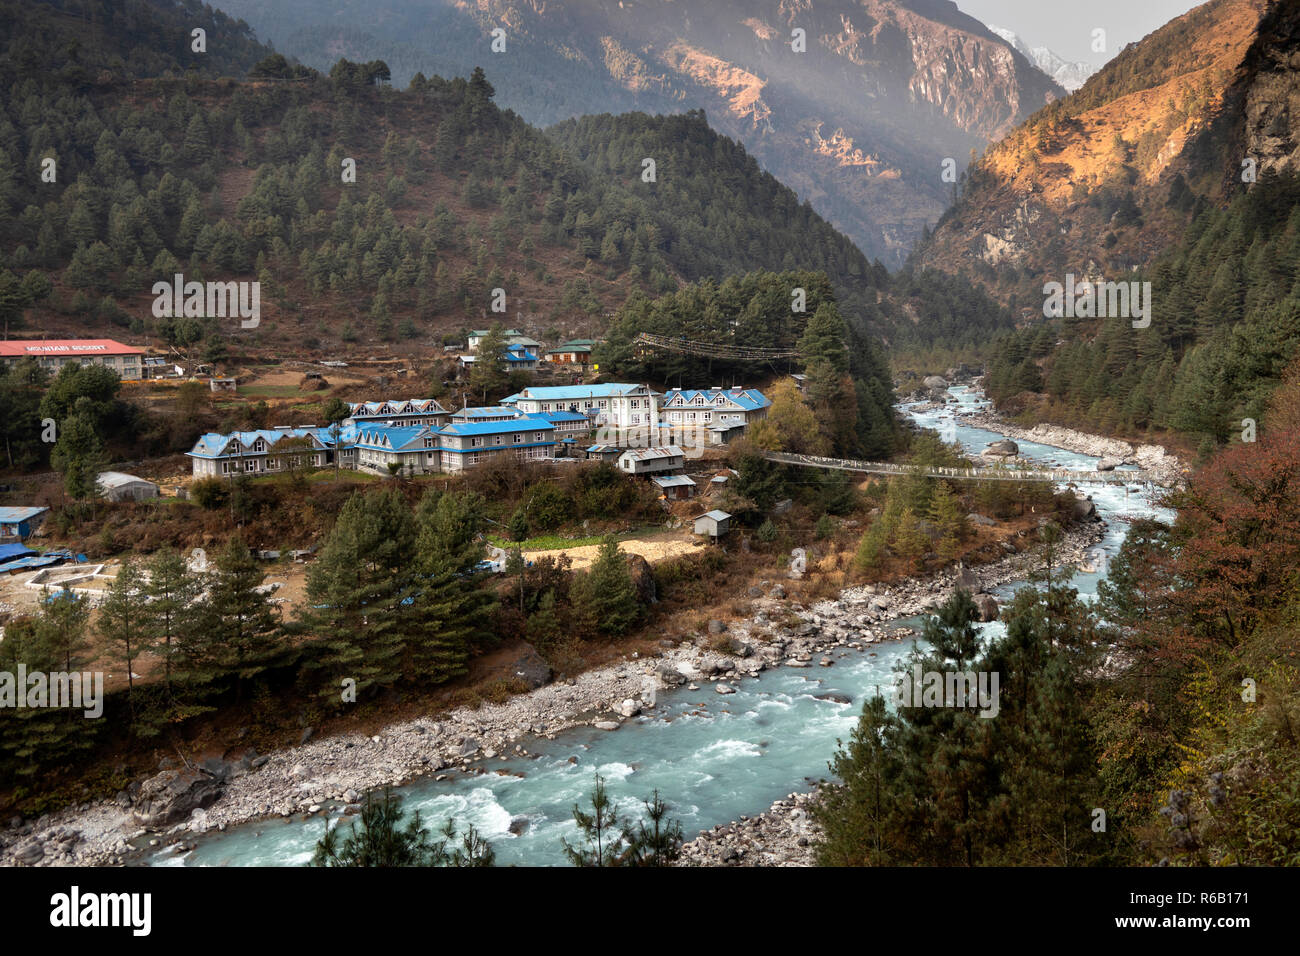 Nepal, Phakding, lodges by bridge to east side of Dudh Kosi River, late afternoon - Stock Image